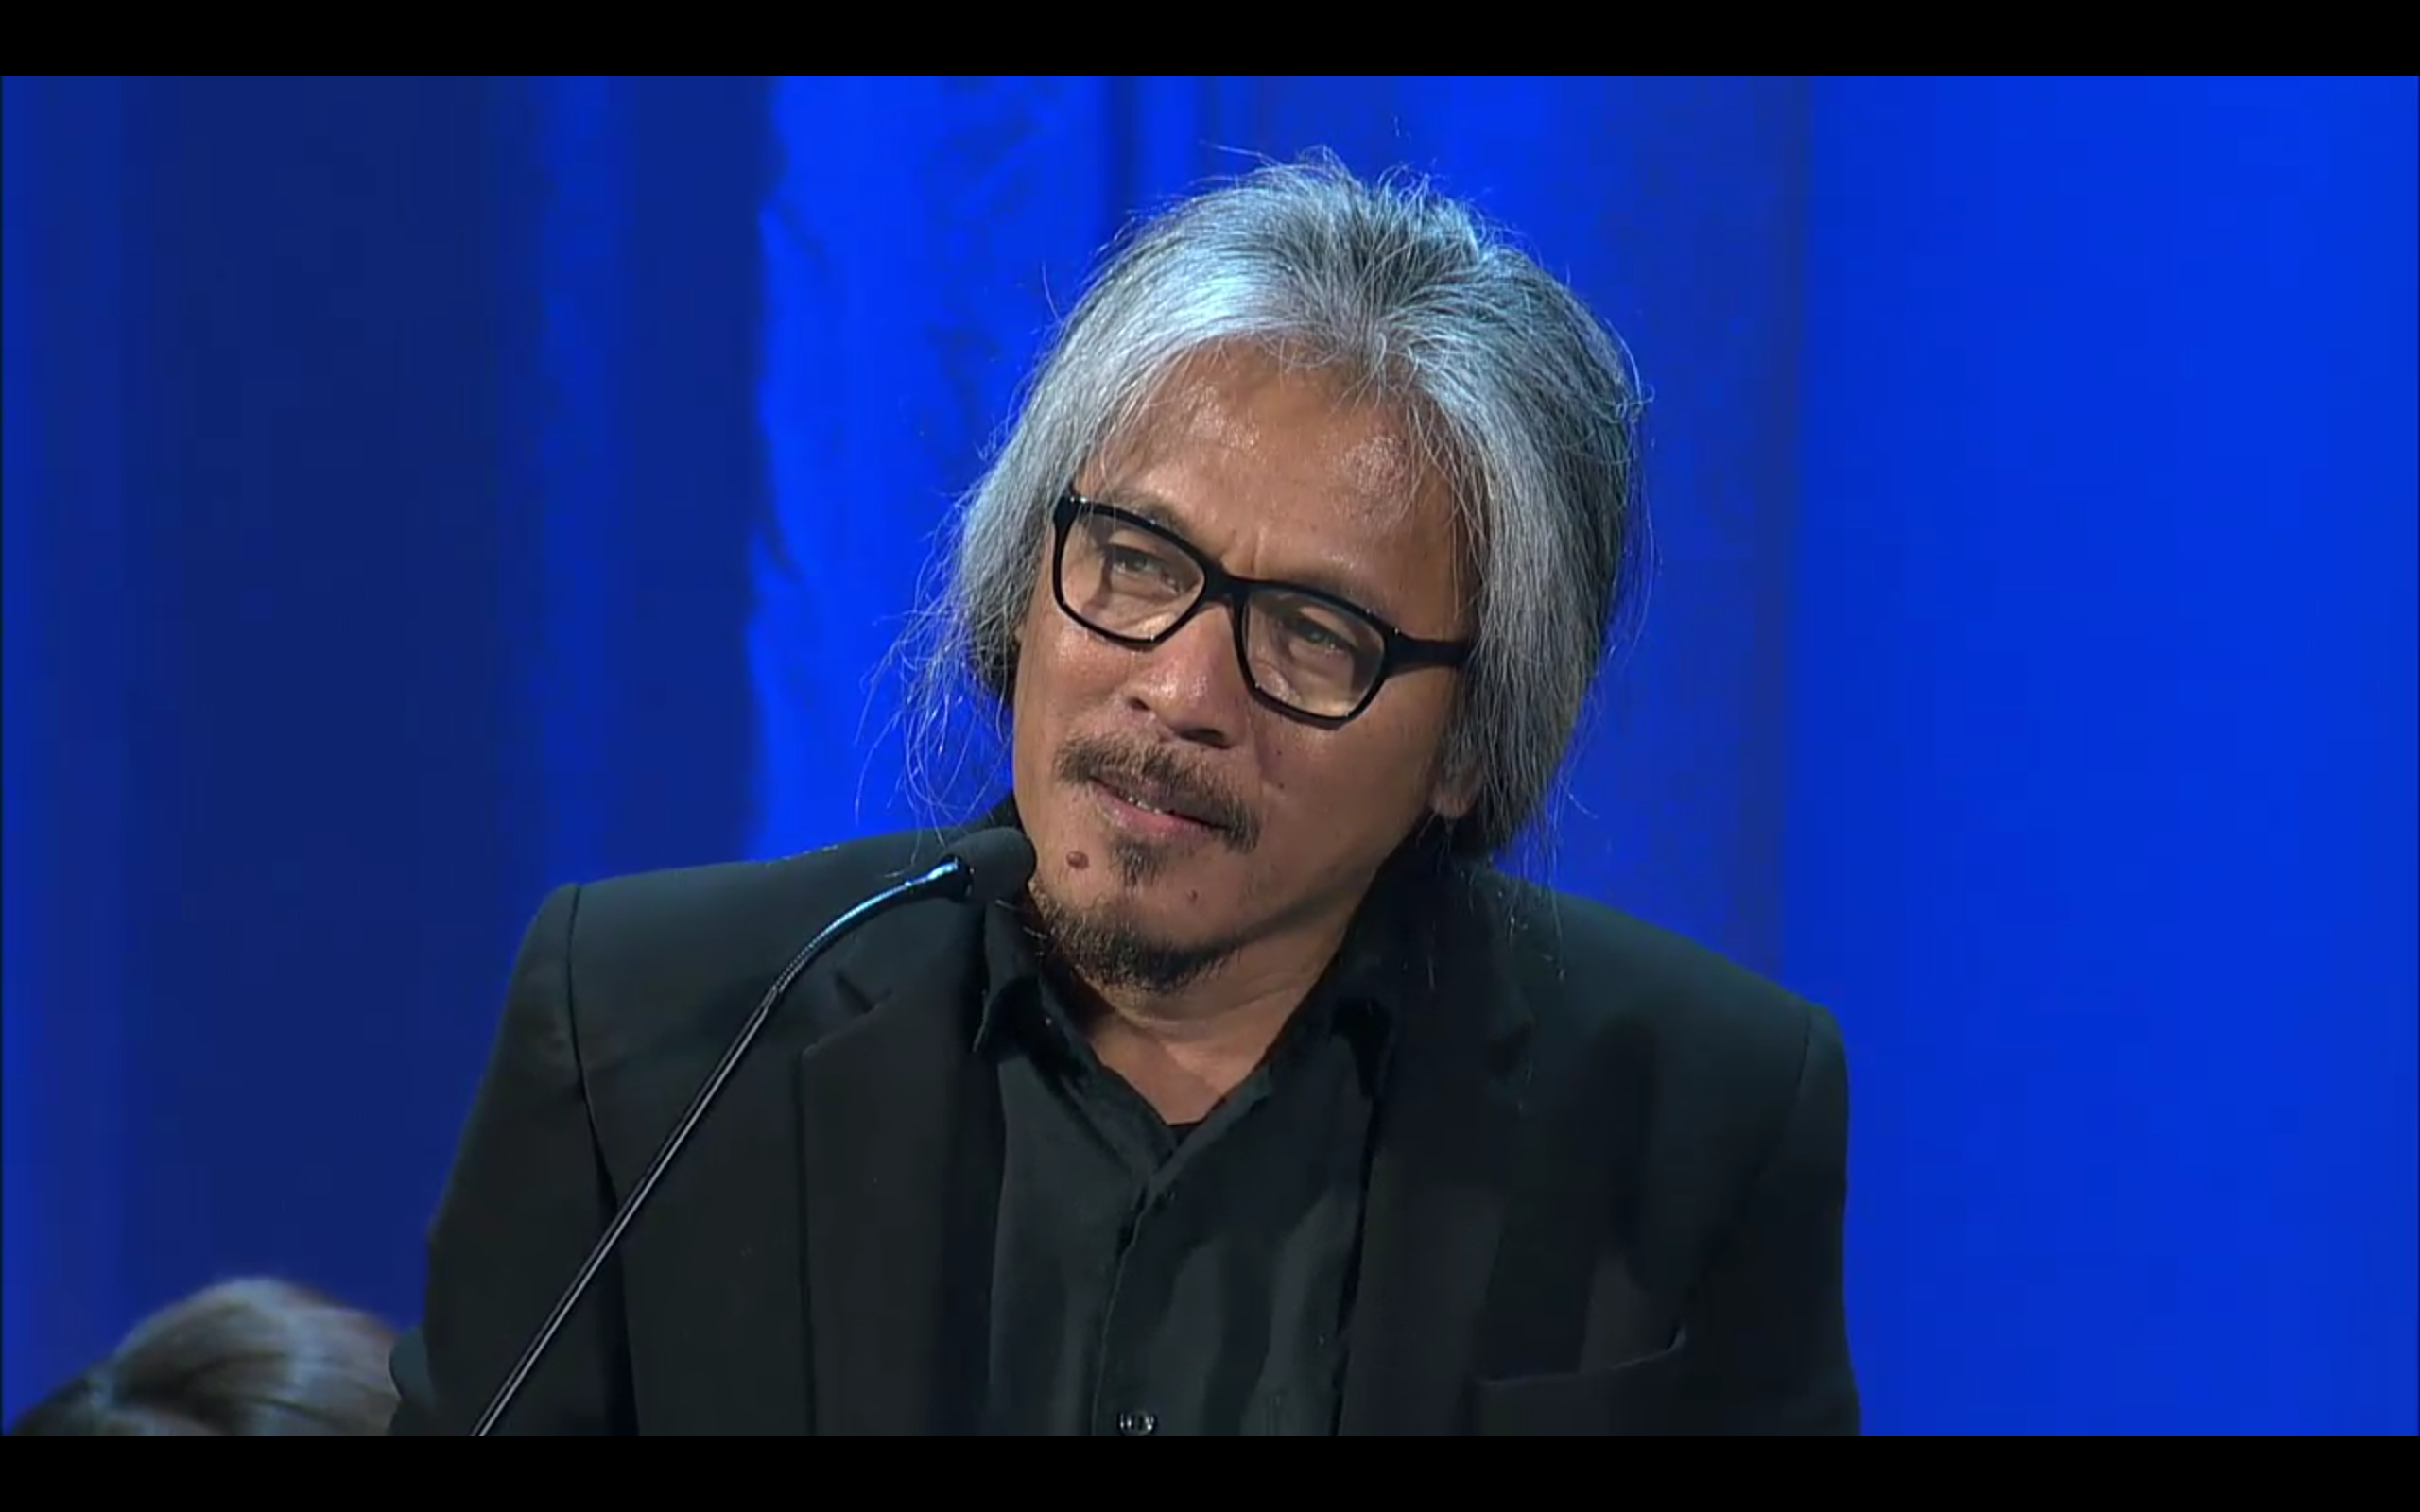 LAV DIAZ Film Director of the Best Film ANG BABAENG HUMAYO (THE WOMAN WHO LEFT) - GOLDEN LION-